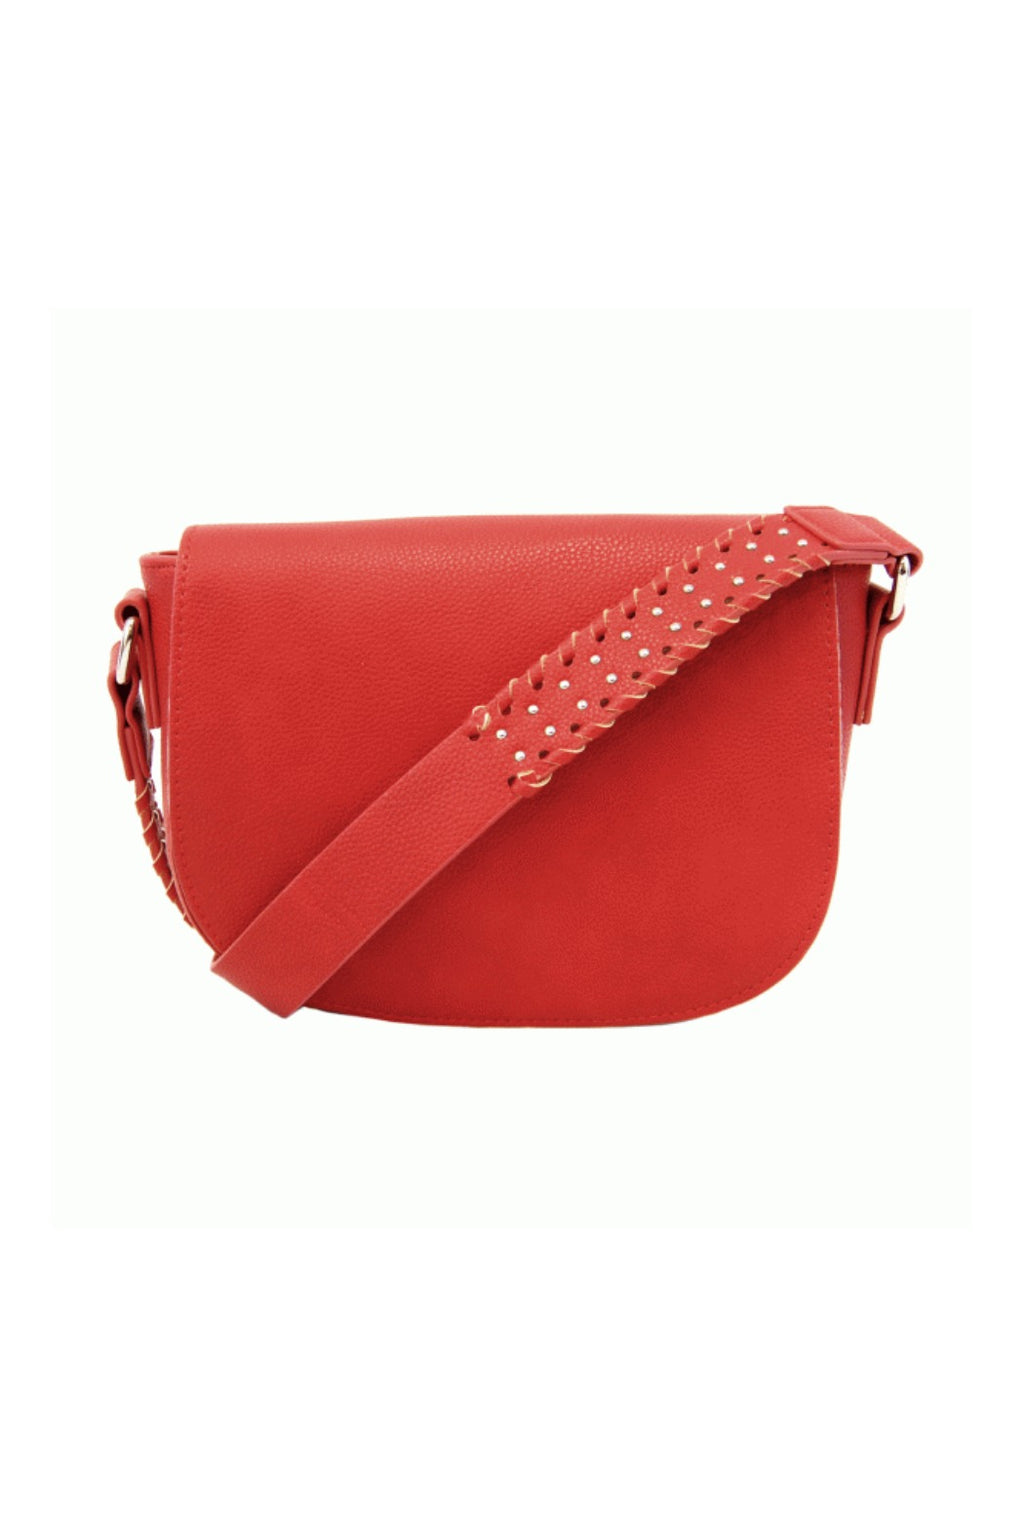 Joy Susan Arianna Guitar Strap Saddle Bag - Very Red